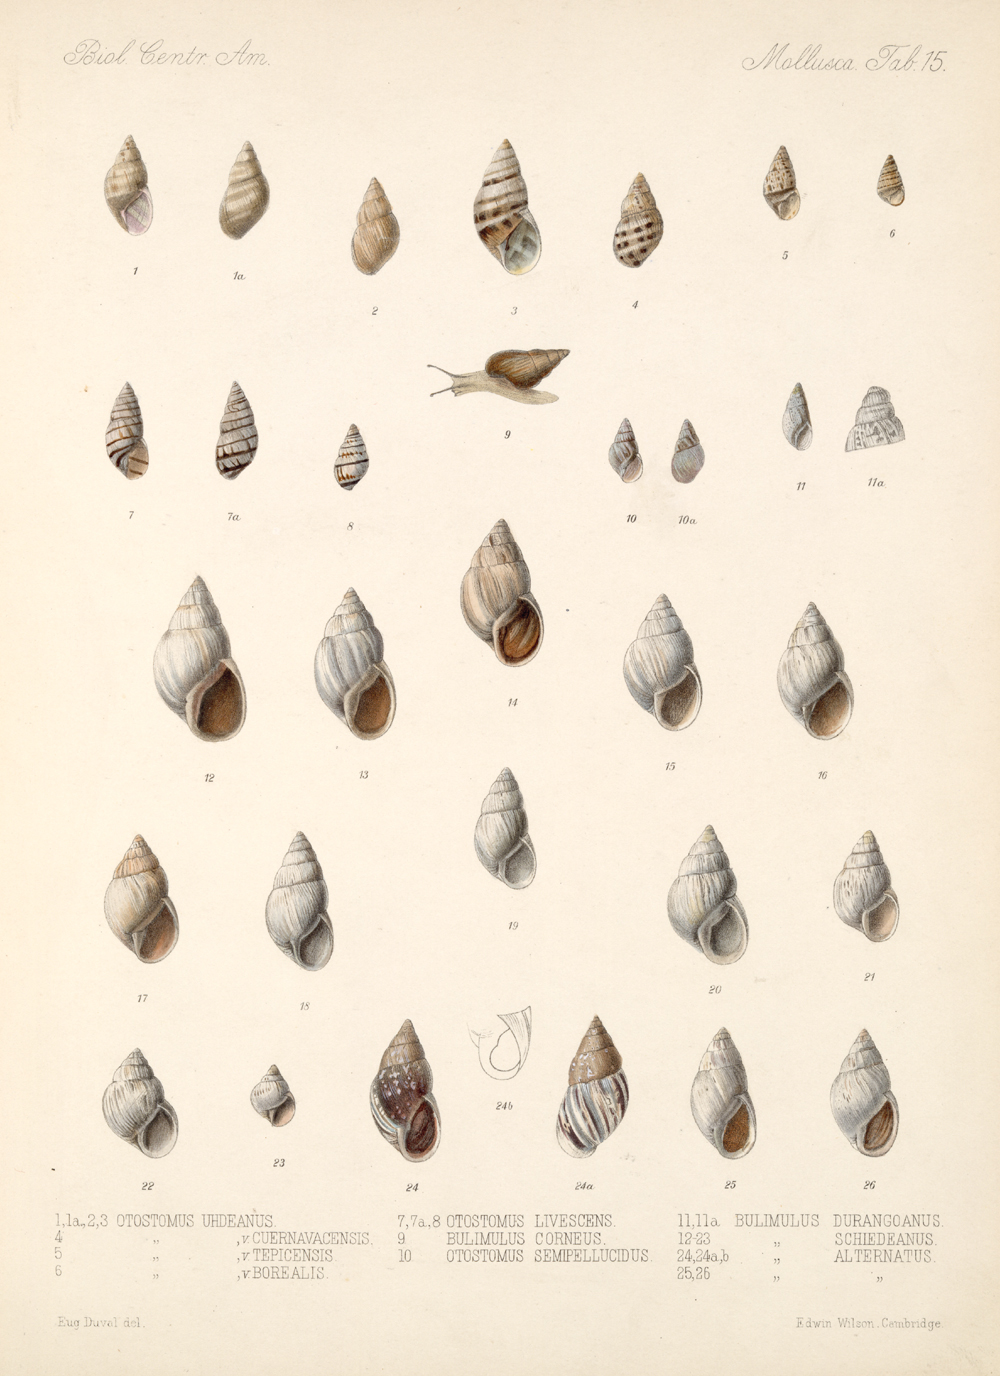 Shells and Mollusks,  Image number:bca_06_00_00_739